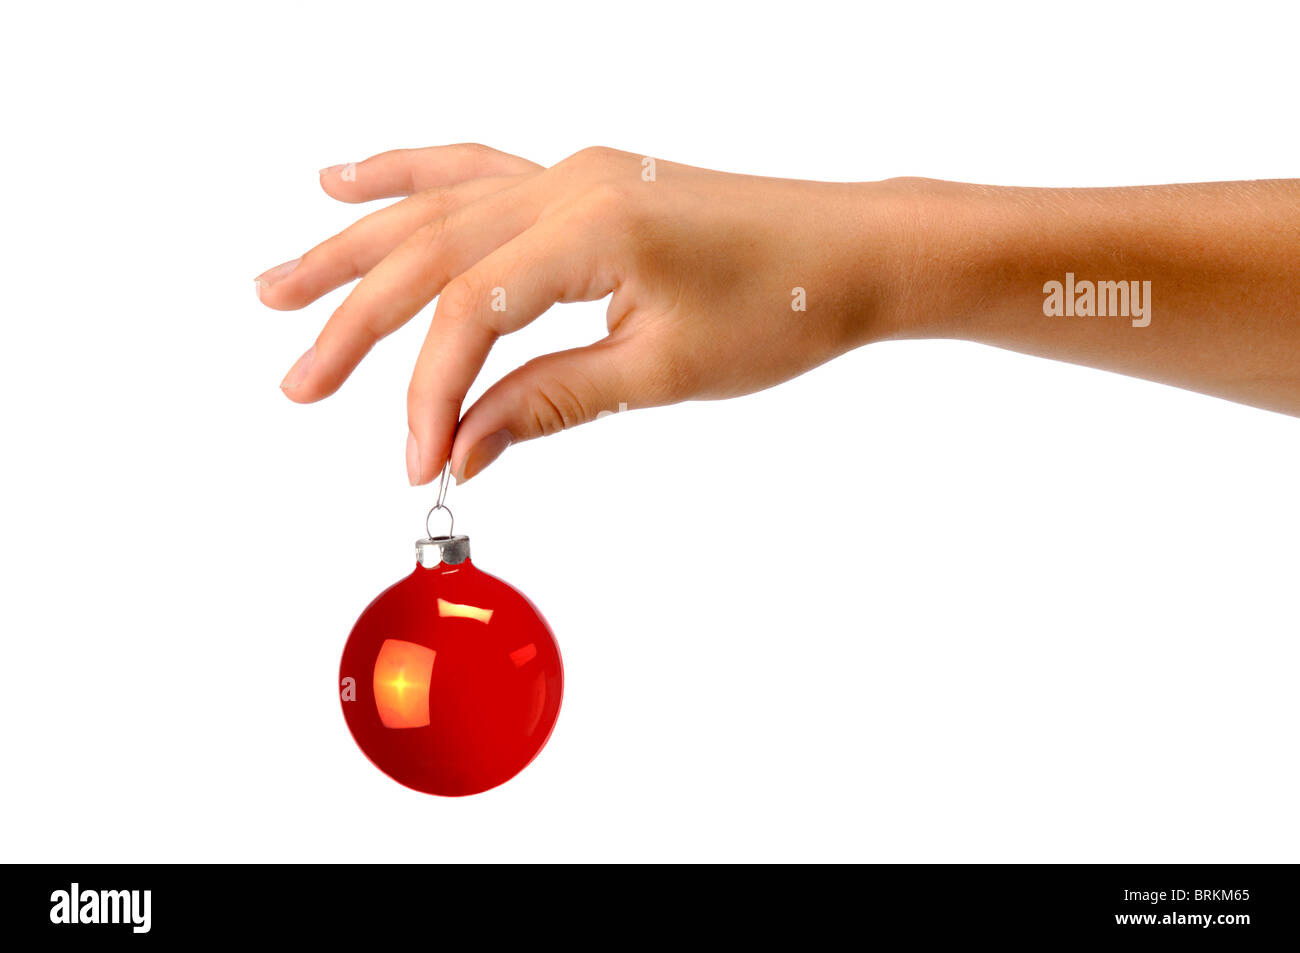 hand holding red christman ornament - Stock Image